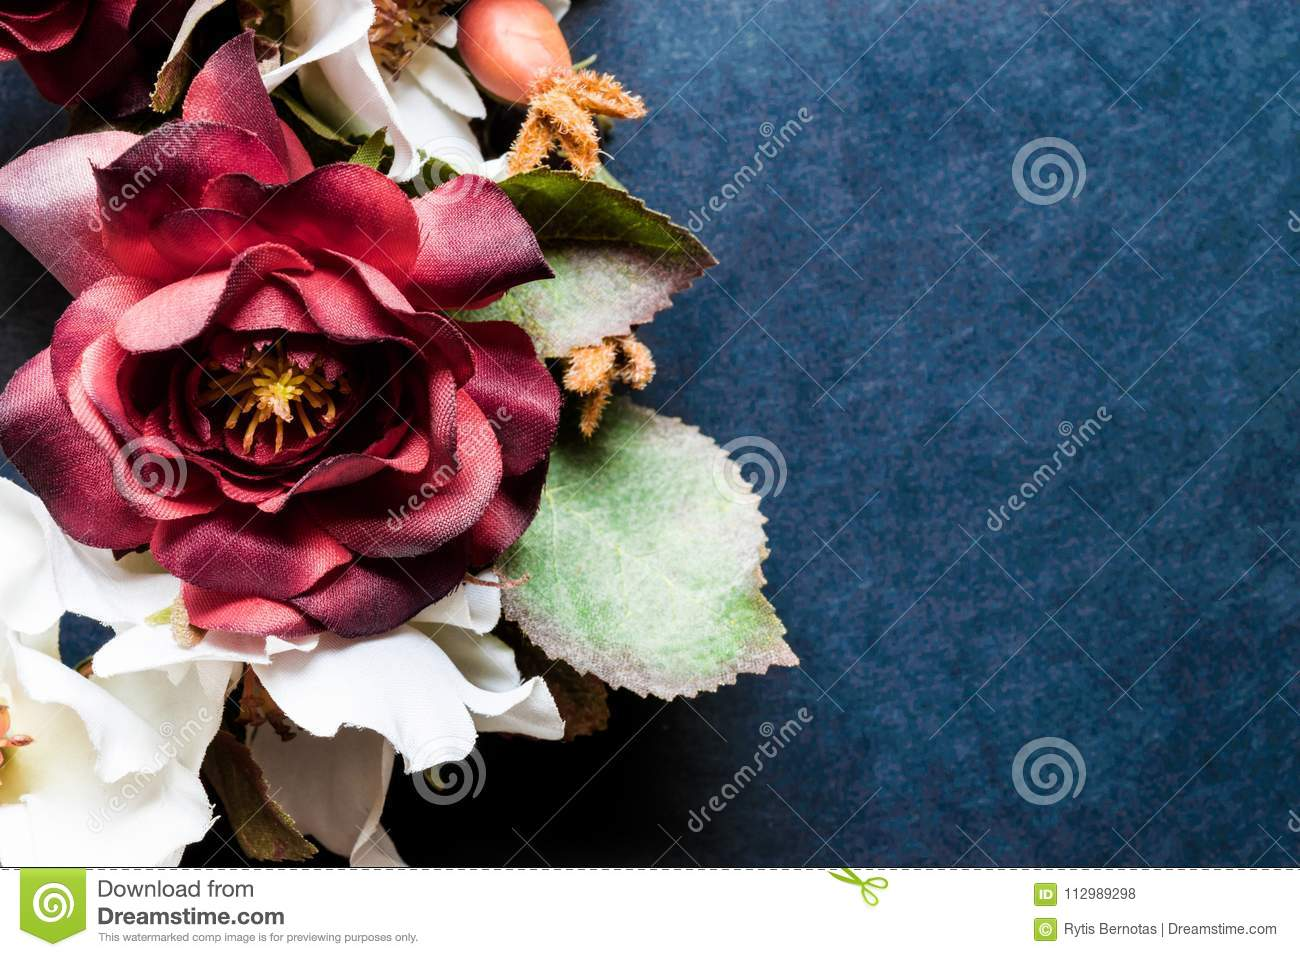 Artificial Flowers on Blue Background Surface and Vintage Style